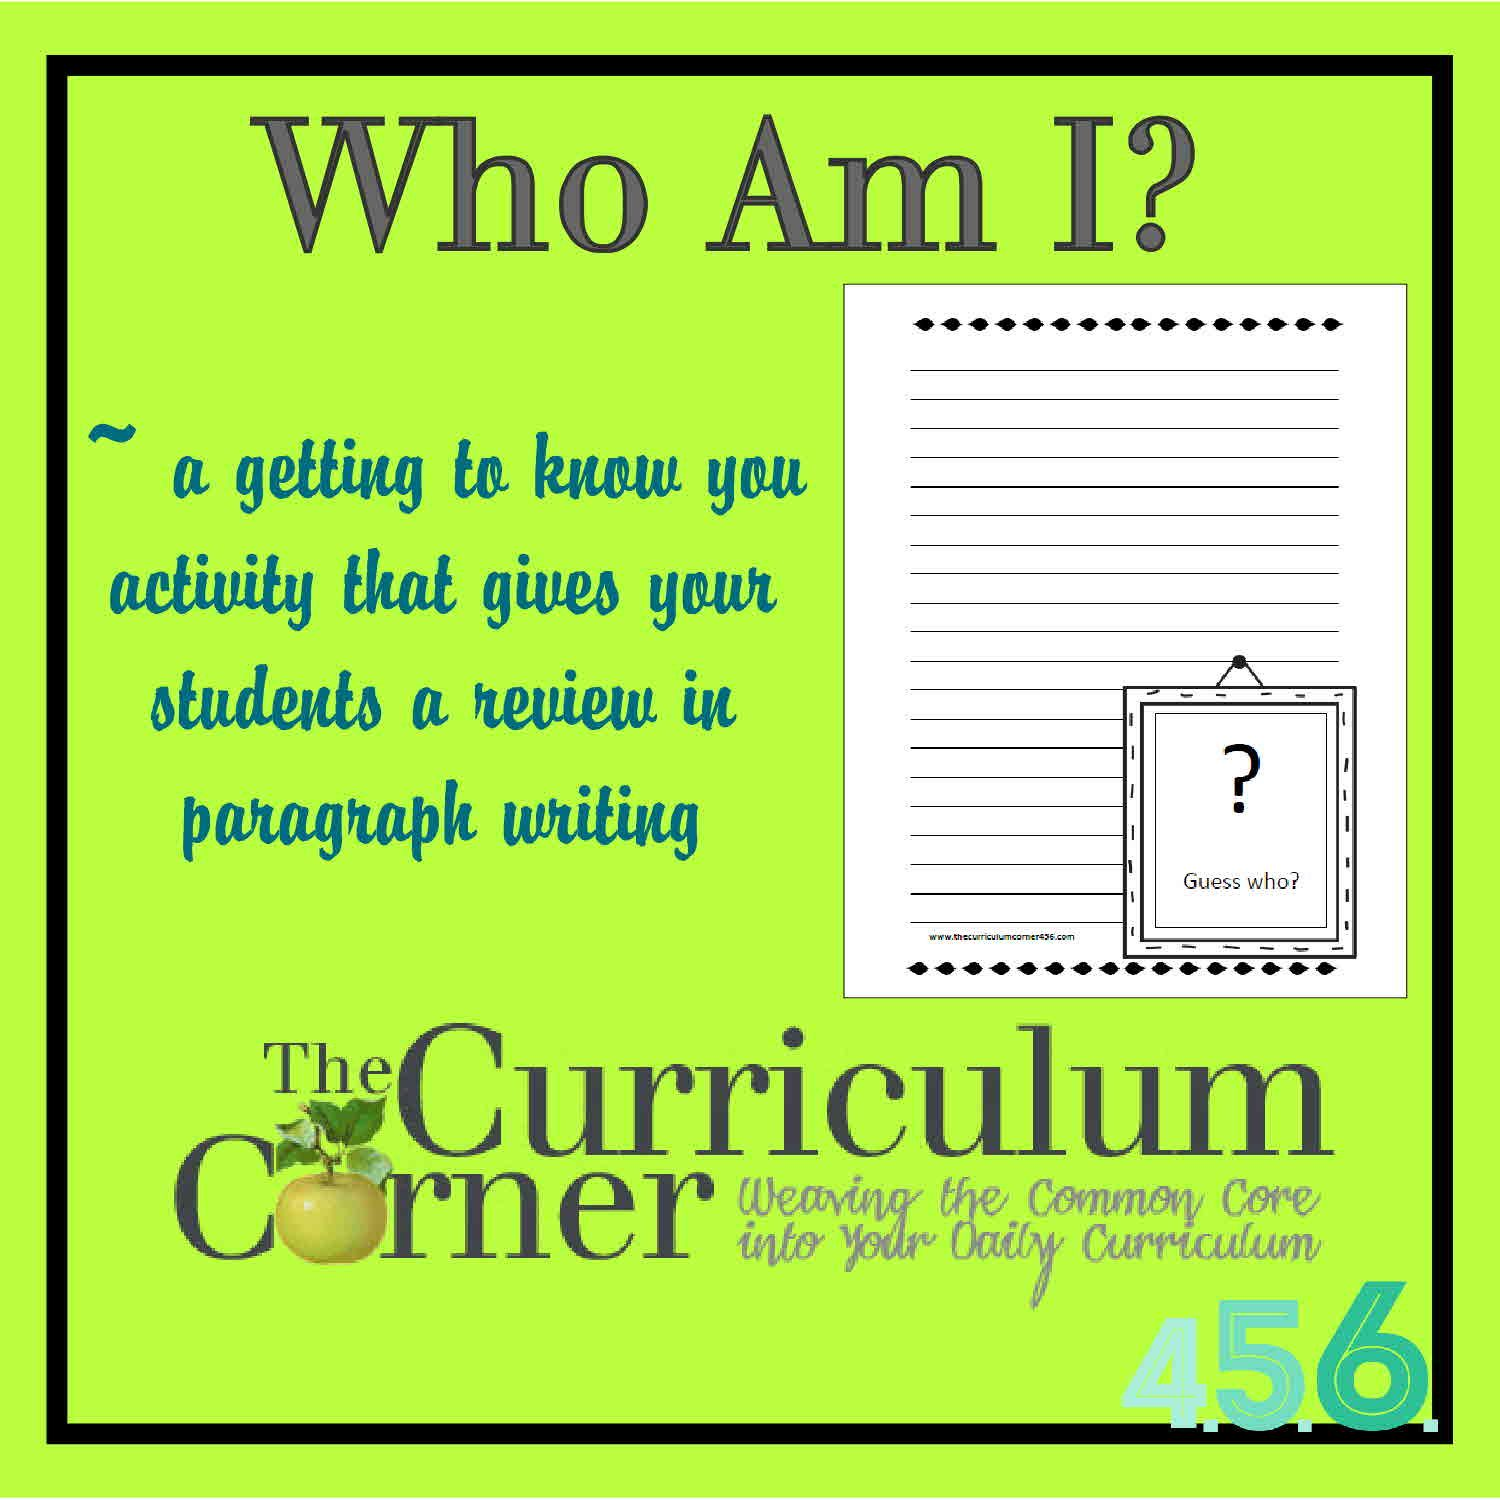 Who Am I Back To School Getting To Know You Activity And Paragraph Writing Review Great Idea